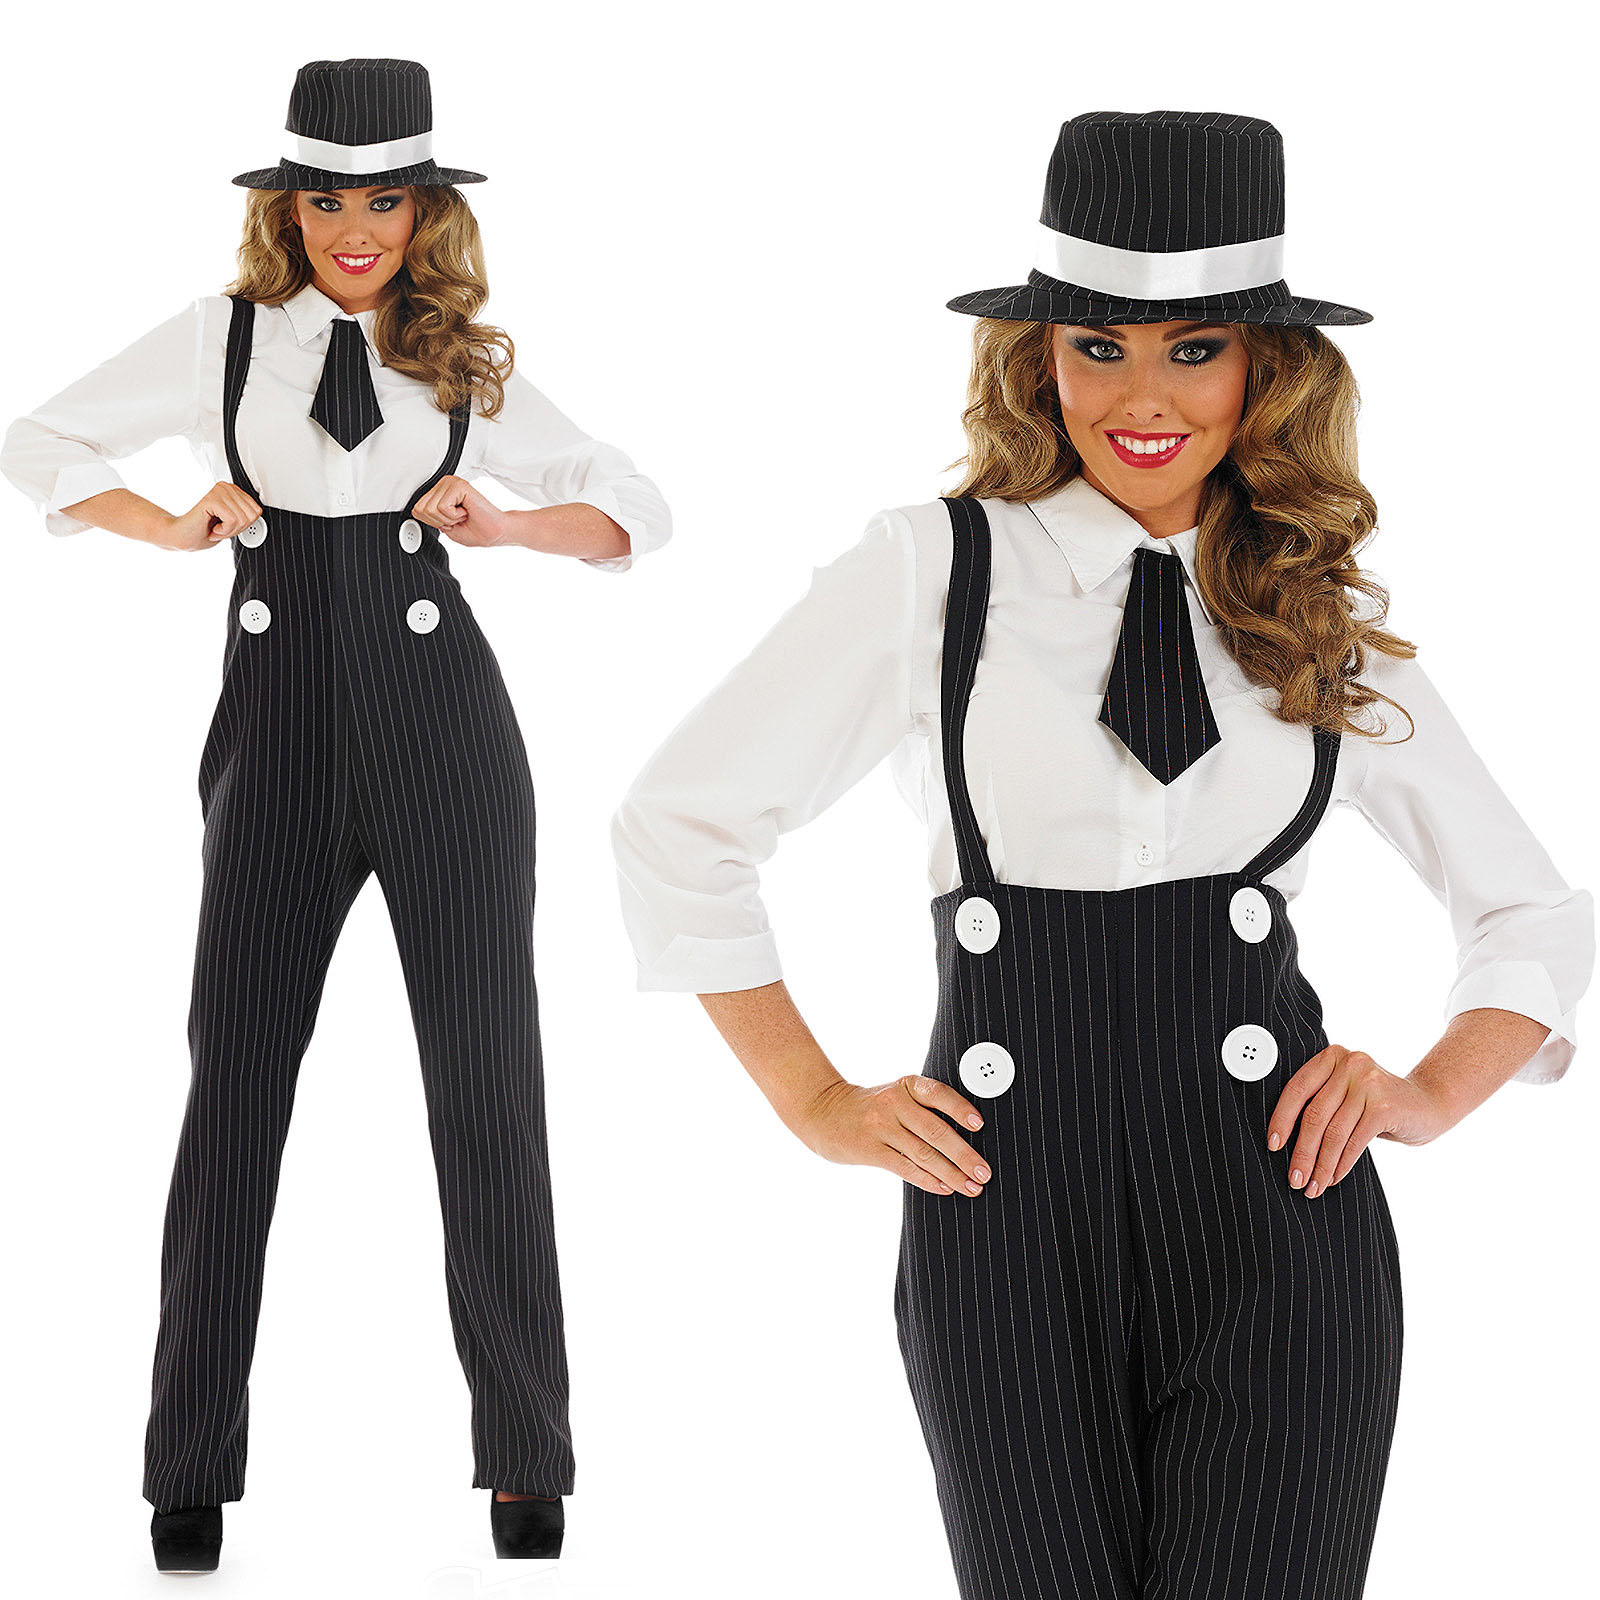 Gangster clothing for women